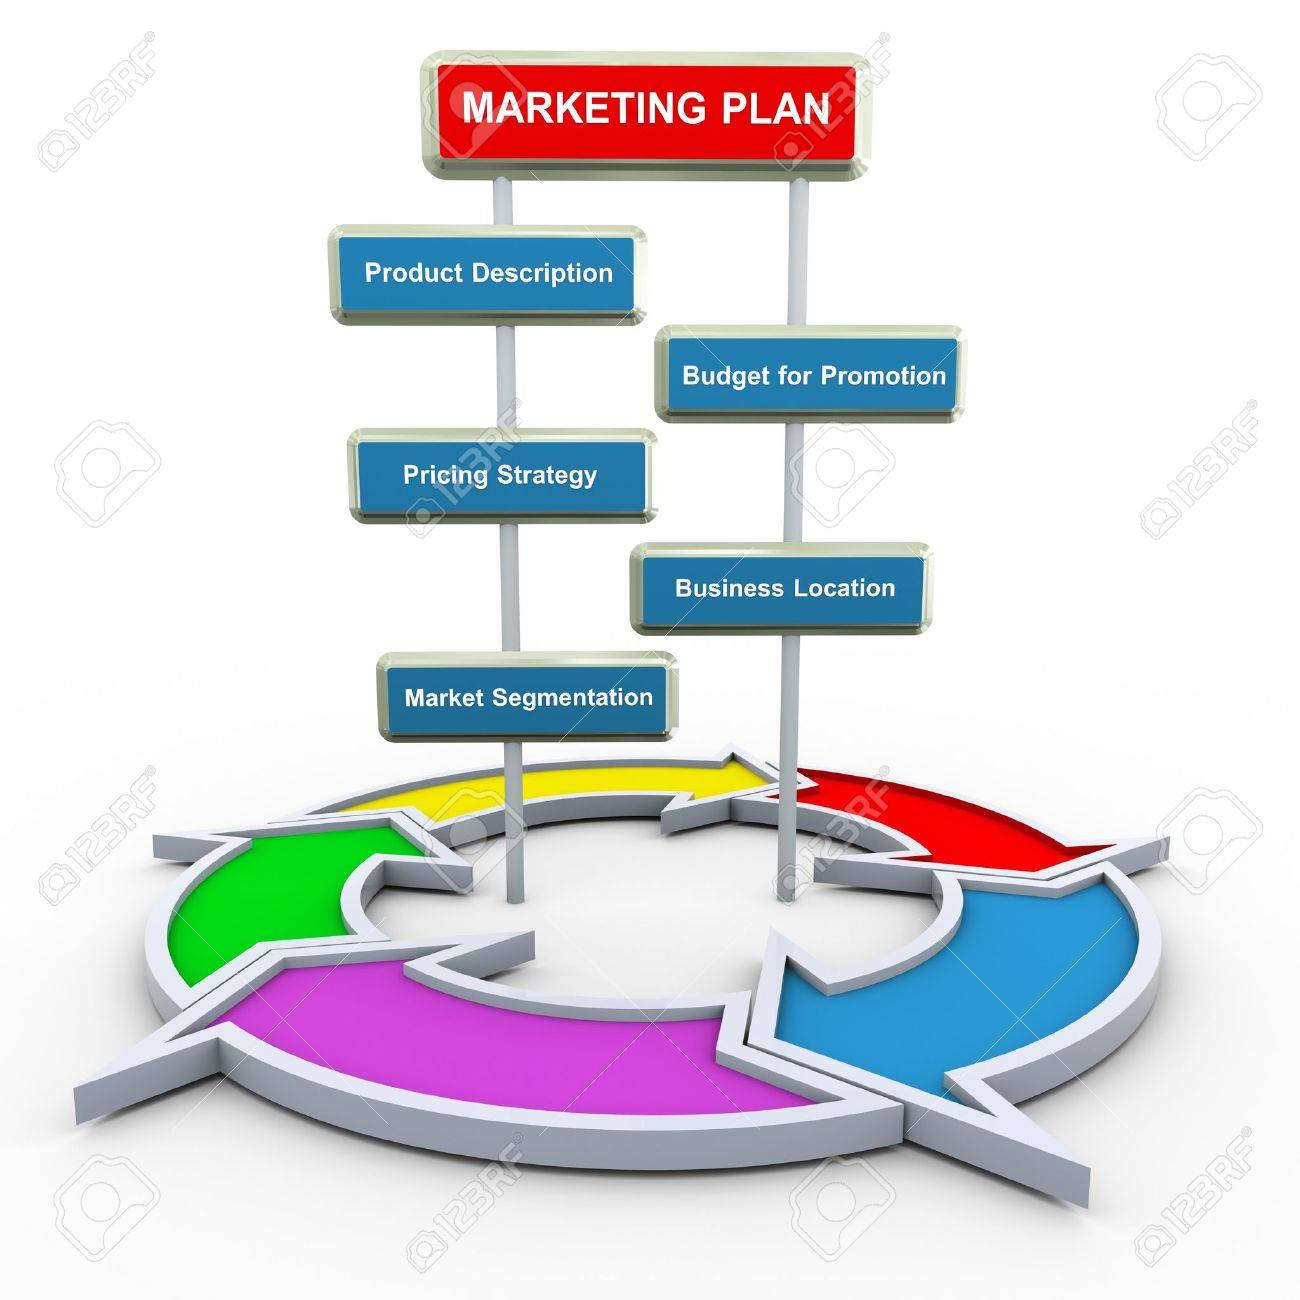 3d render of marketing plan concept with circular flow diagram 3d render of marketing plan concept with circular flow diagram stock photo 11809280 pooptronica